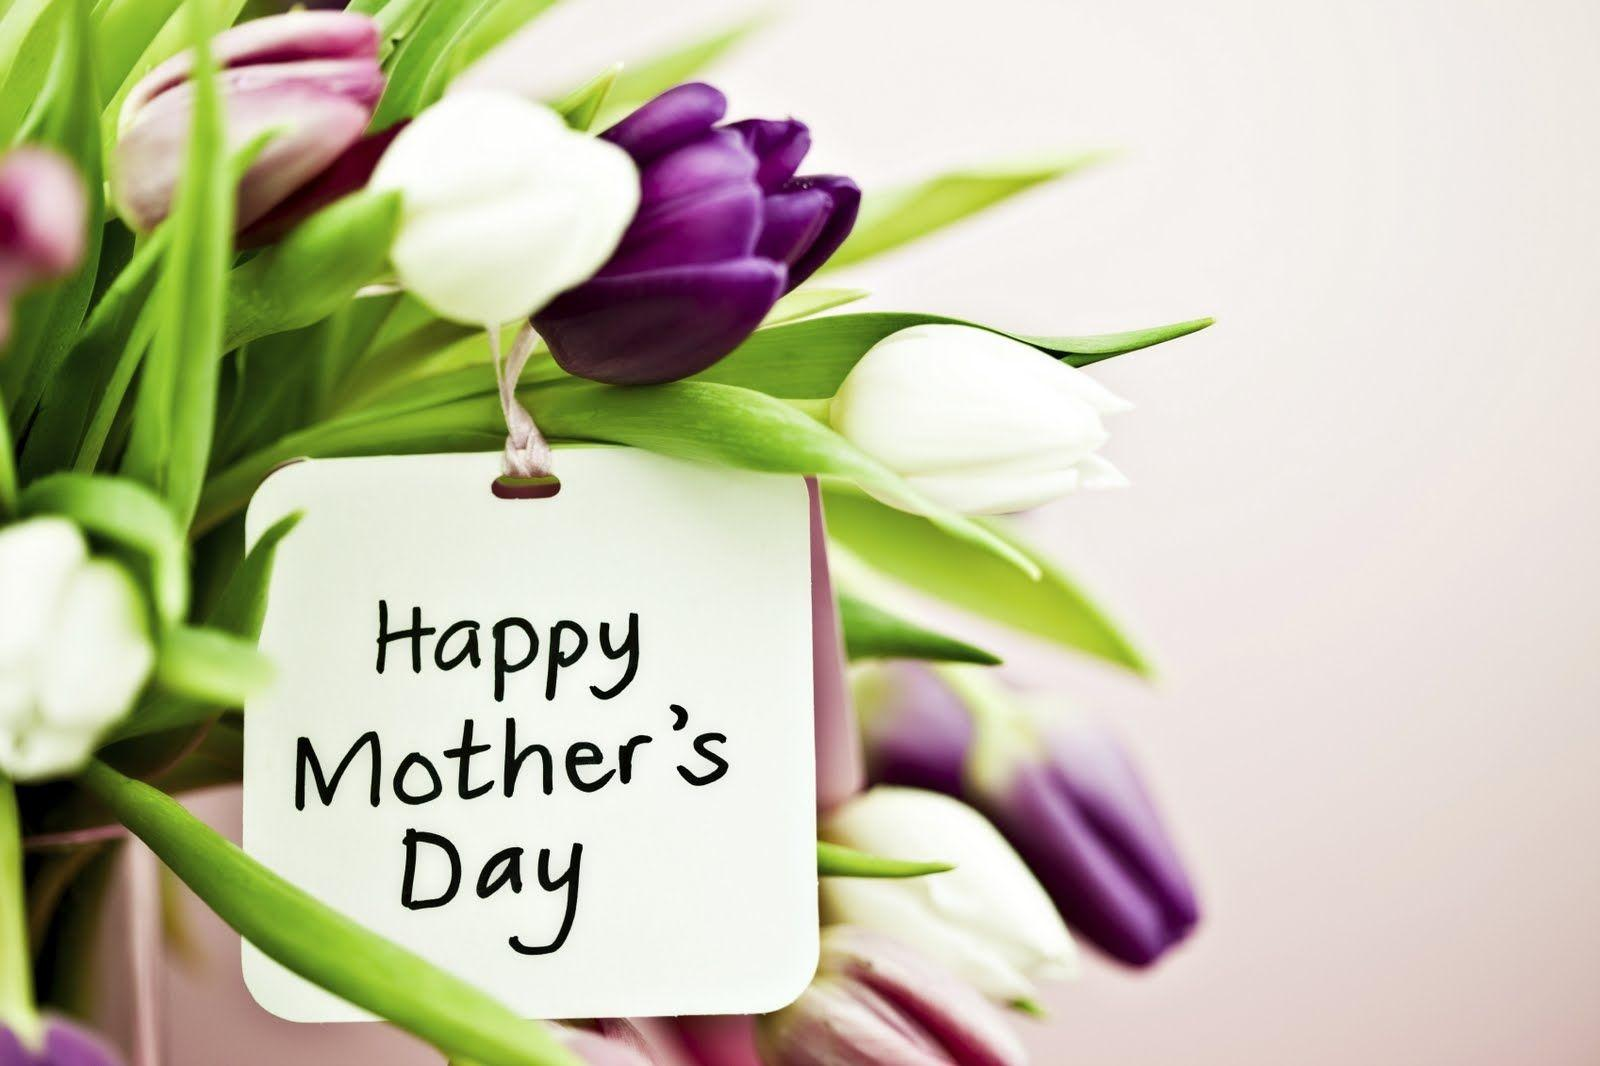 Mothers Day HD Wallpapers 3D Card For Free | Happy New Year 2014 ...